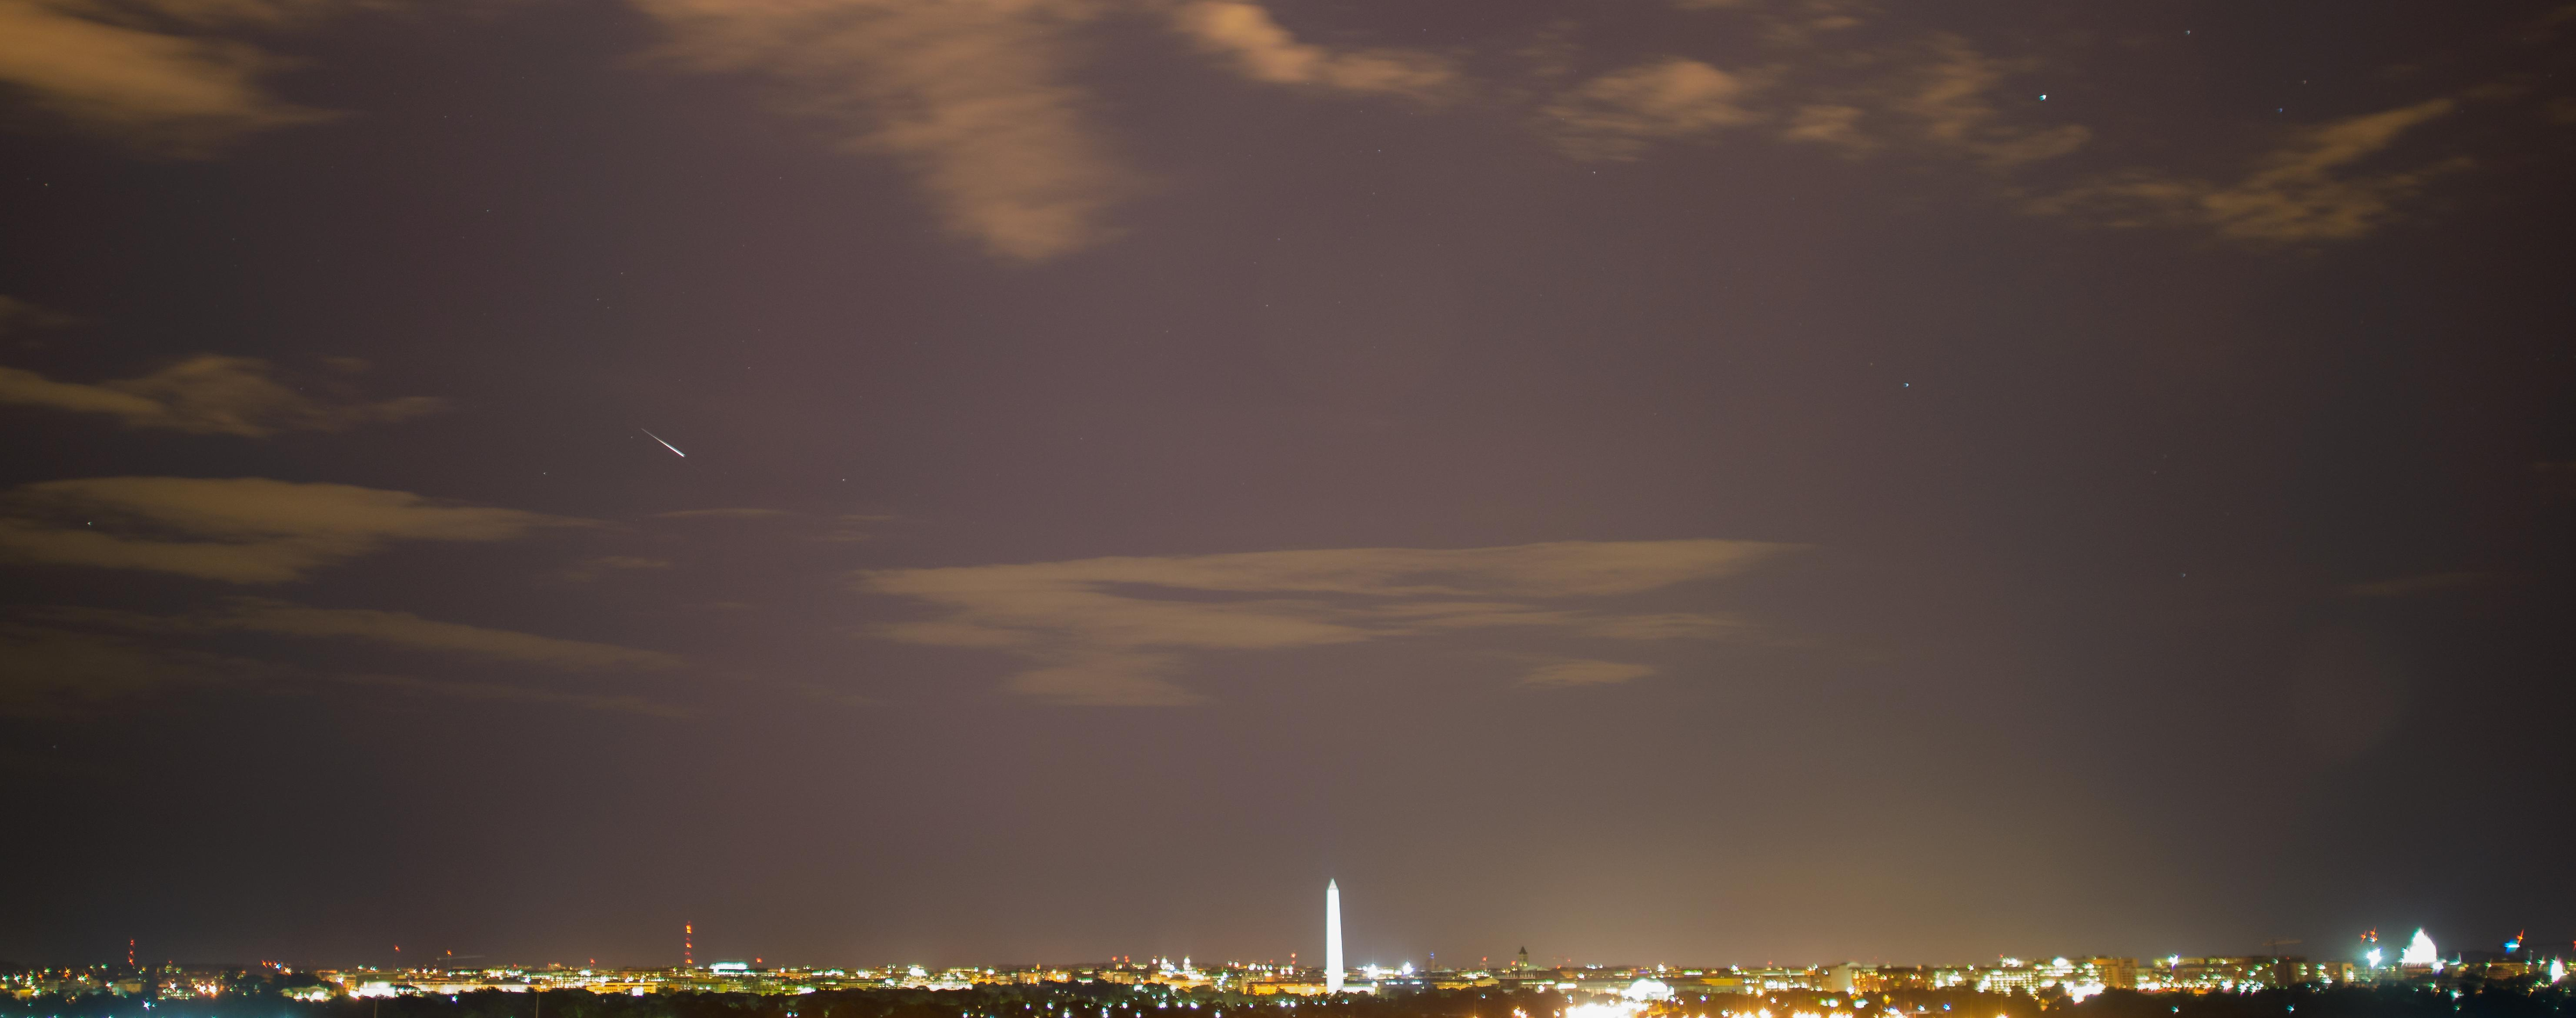 meteor over dc